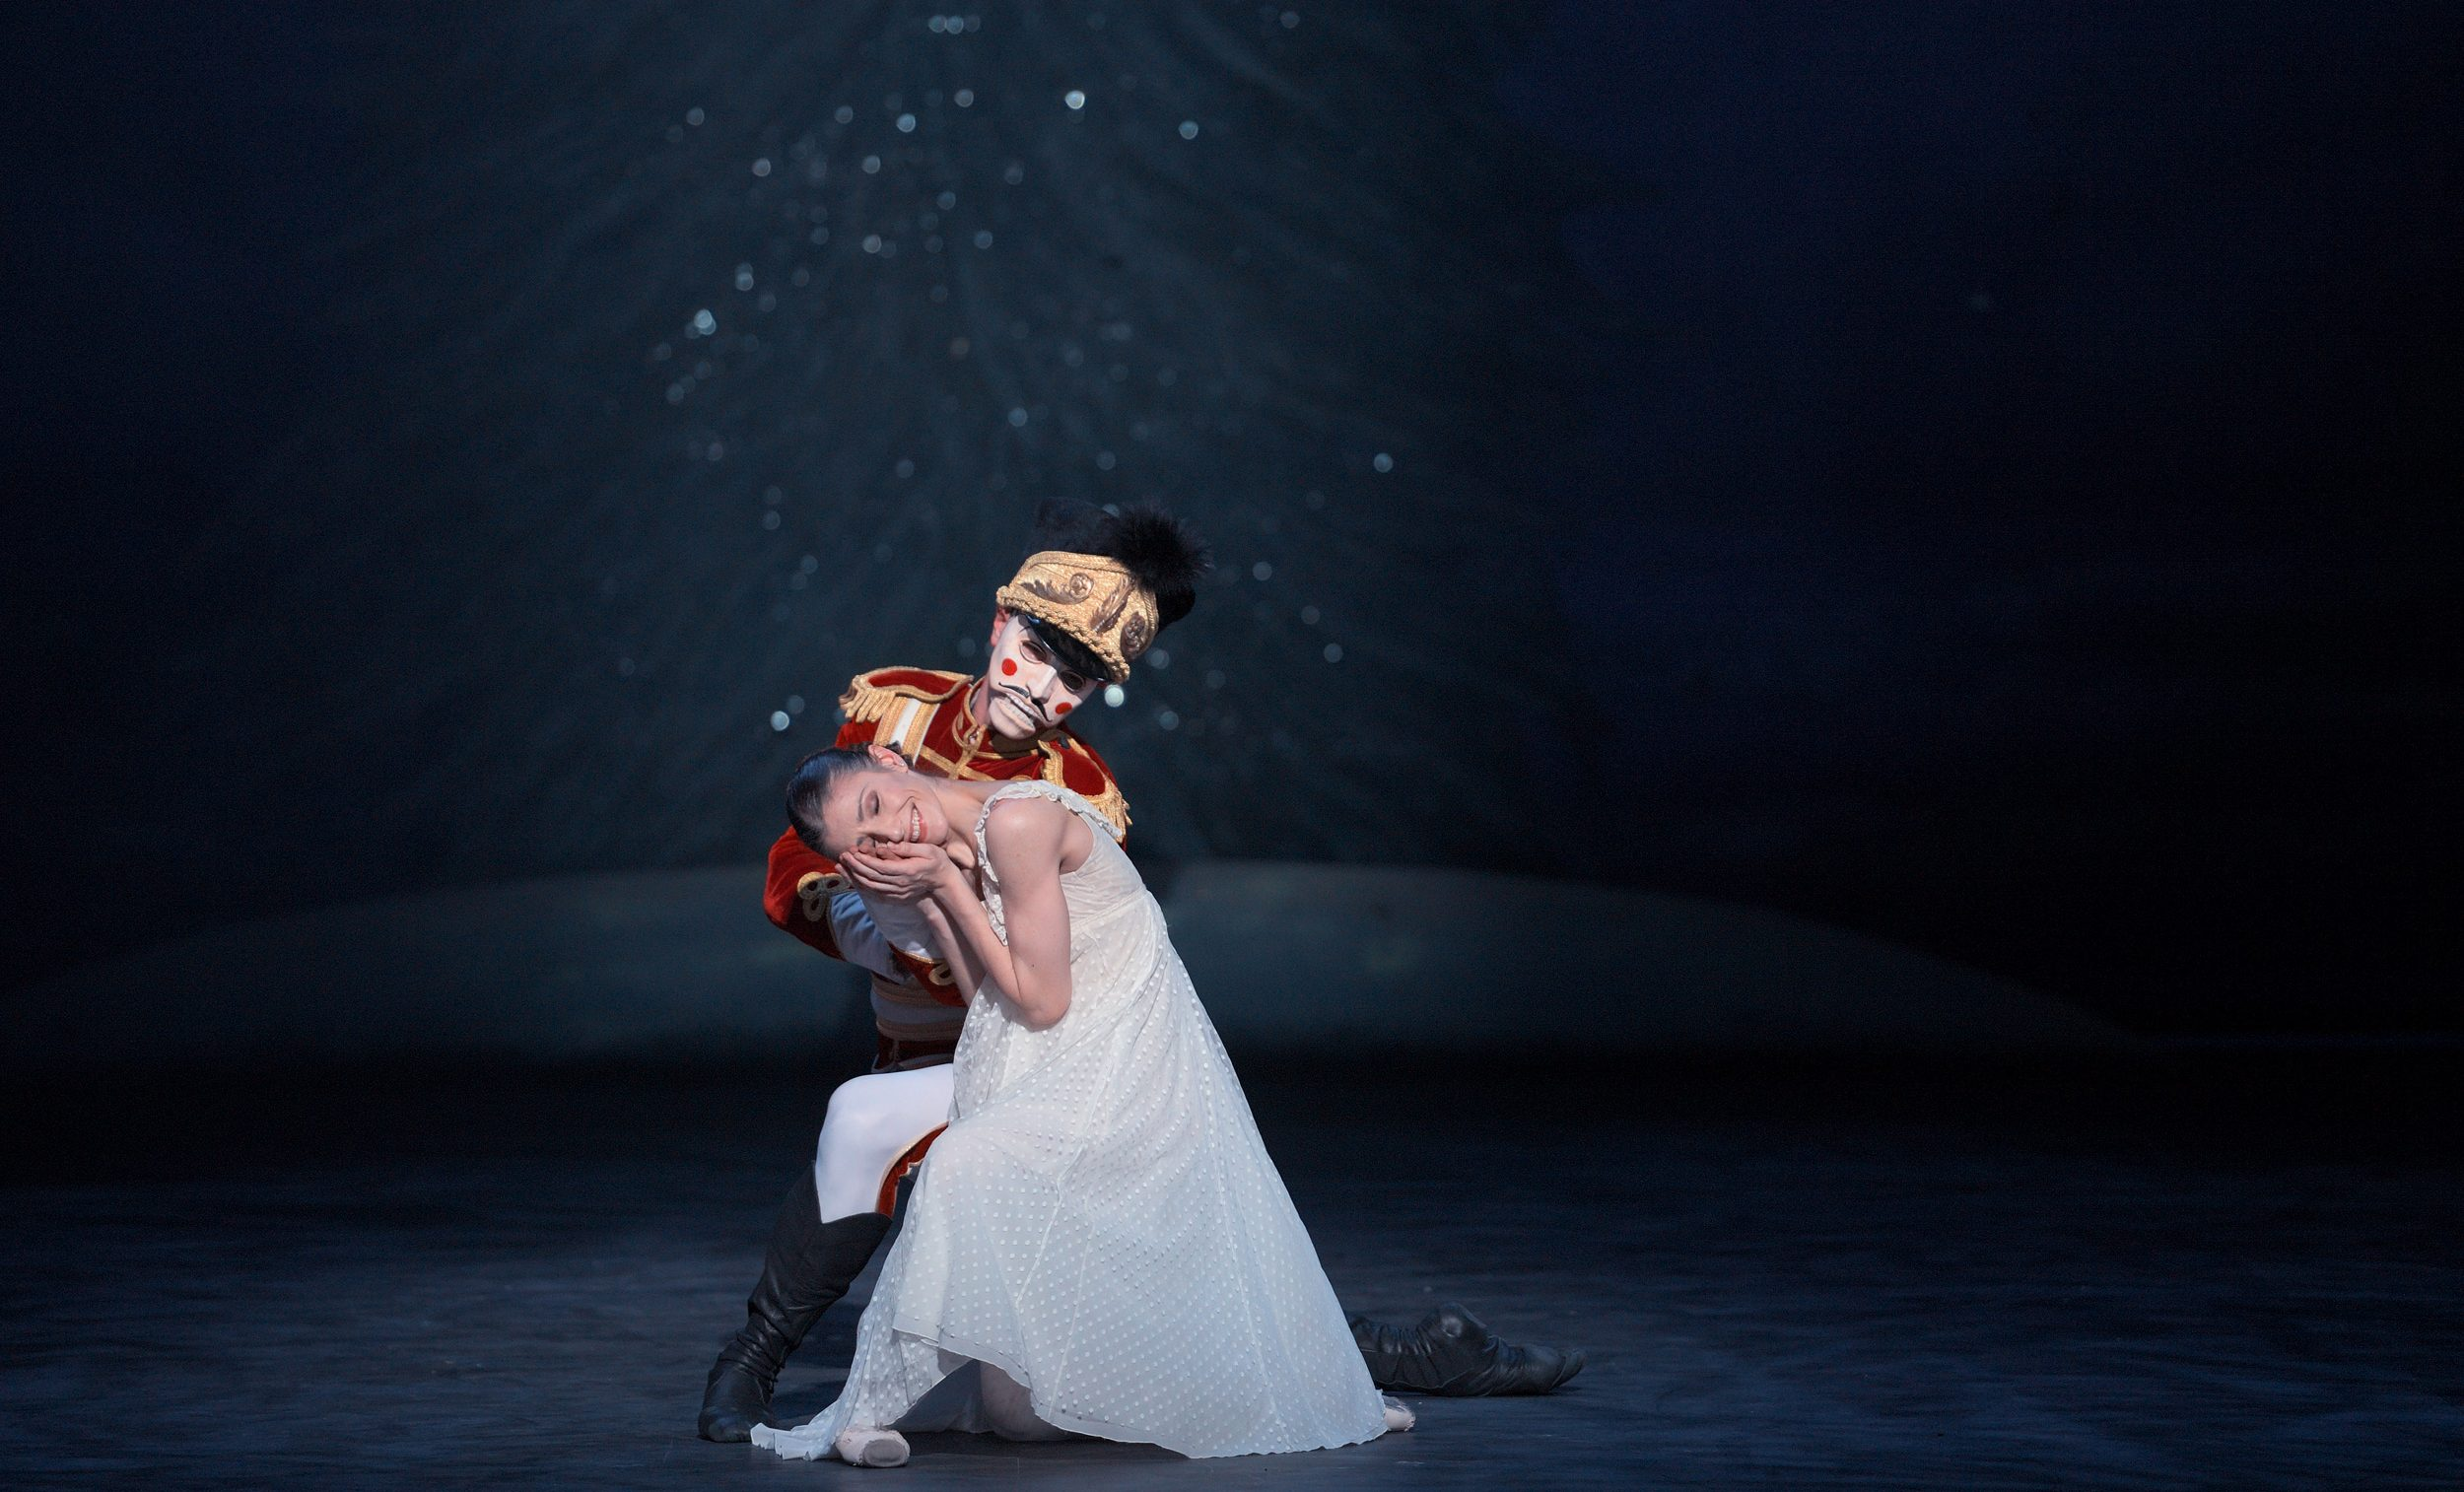 Alina-Cojocaru-and-James-Forbat-in-English-National-Ballet's-Nutcracker-(C)-Laurent-Liotardo-2500px-for-web